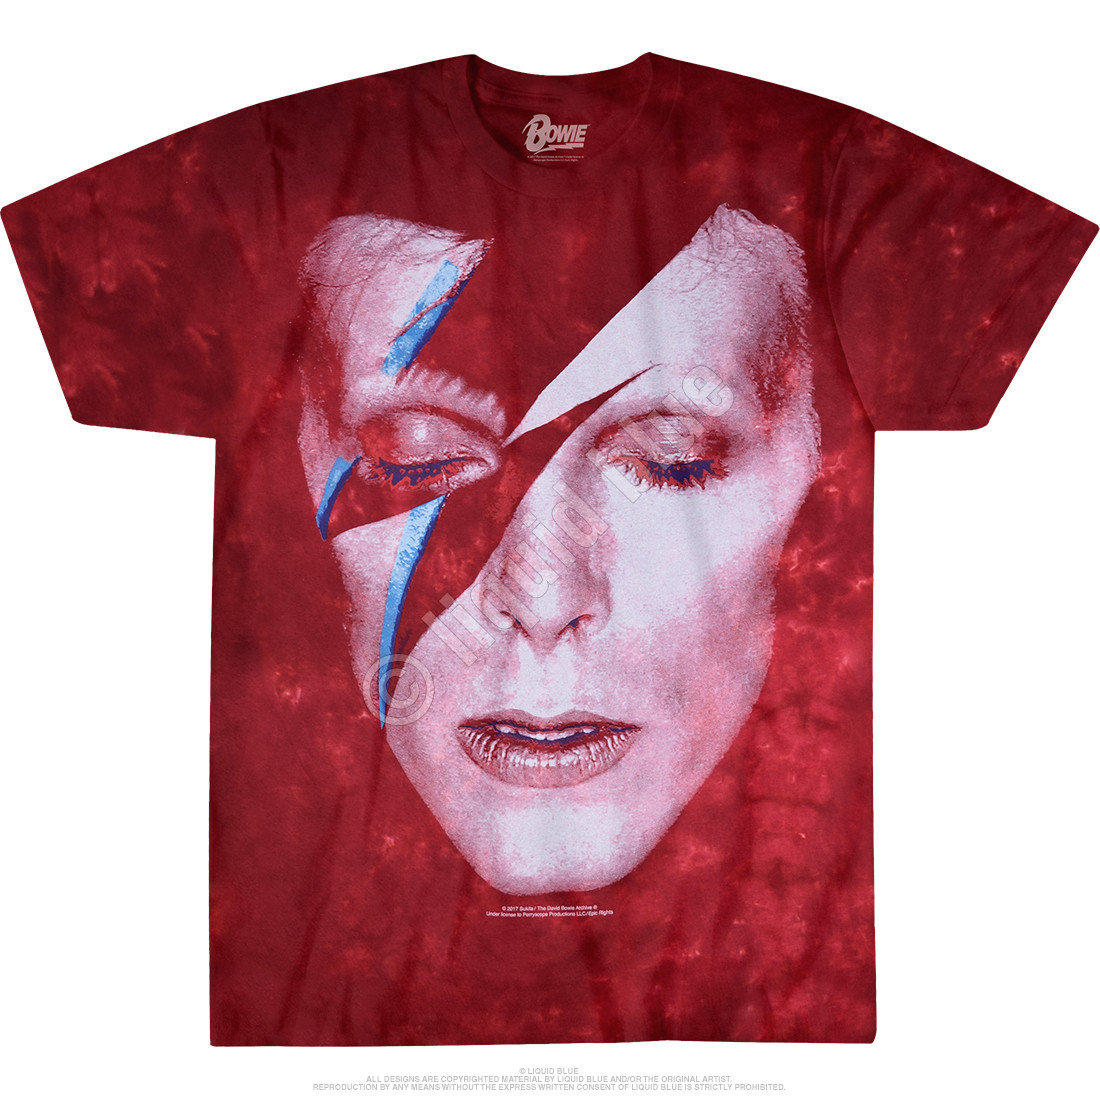 Ladies White Aladdin Sane David Bowie Rock Licensed Tee T-Shirt Womens